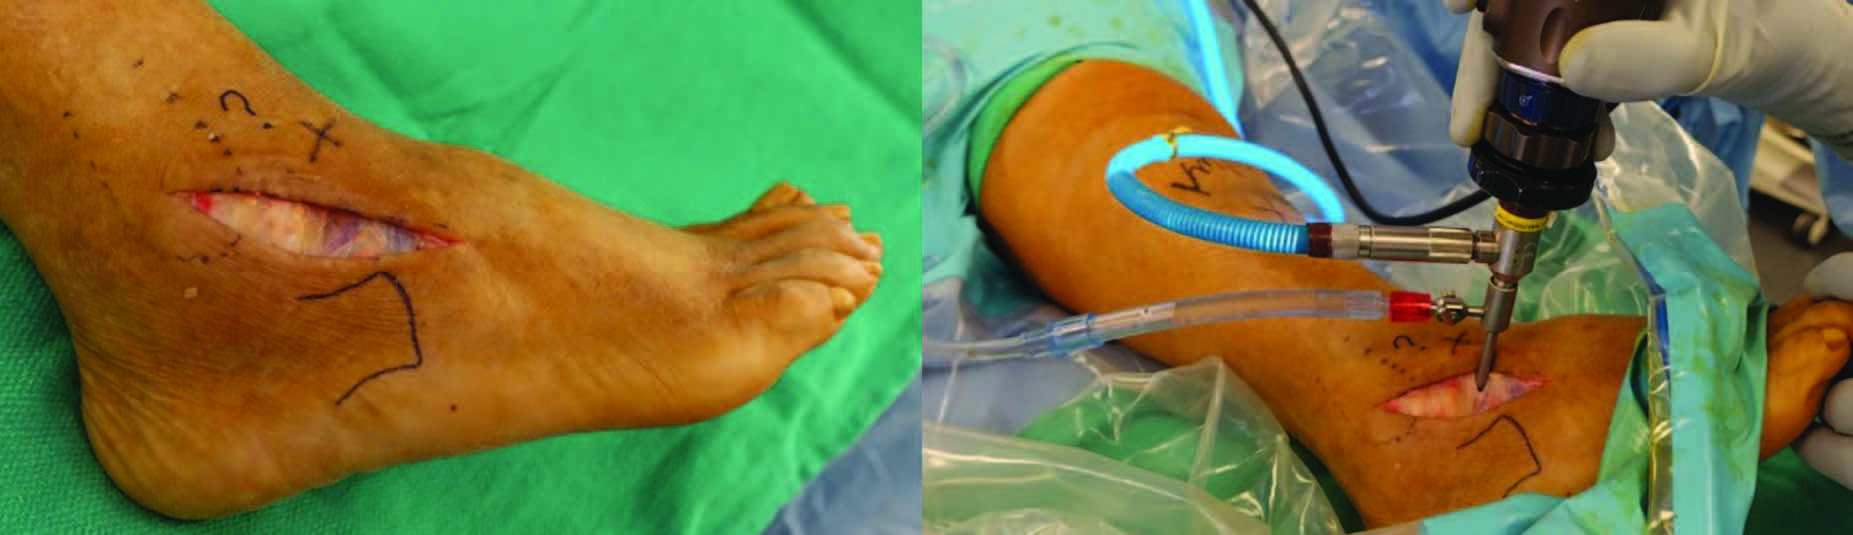 After making the modified sinus tarsi incision, the surgeon carries dissection down to the extensor retinaculum as one can see in the photo on the left. After achieving adequate exposure, the surgeon can directly make the STJ arthroscopic ports through the extensor retinaculum as shown in the photo on the right.